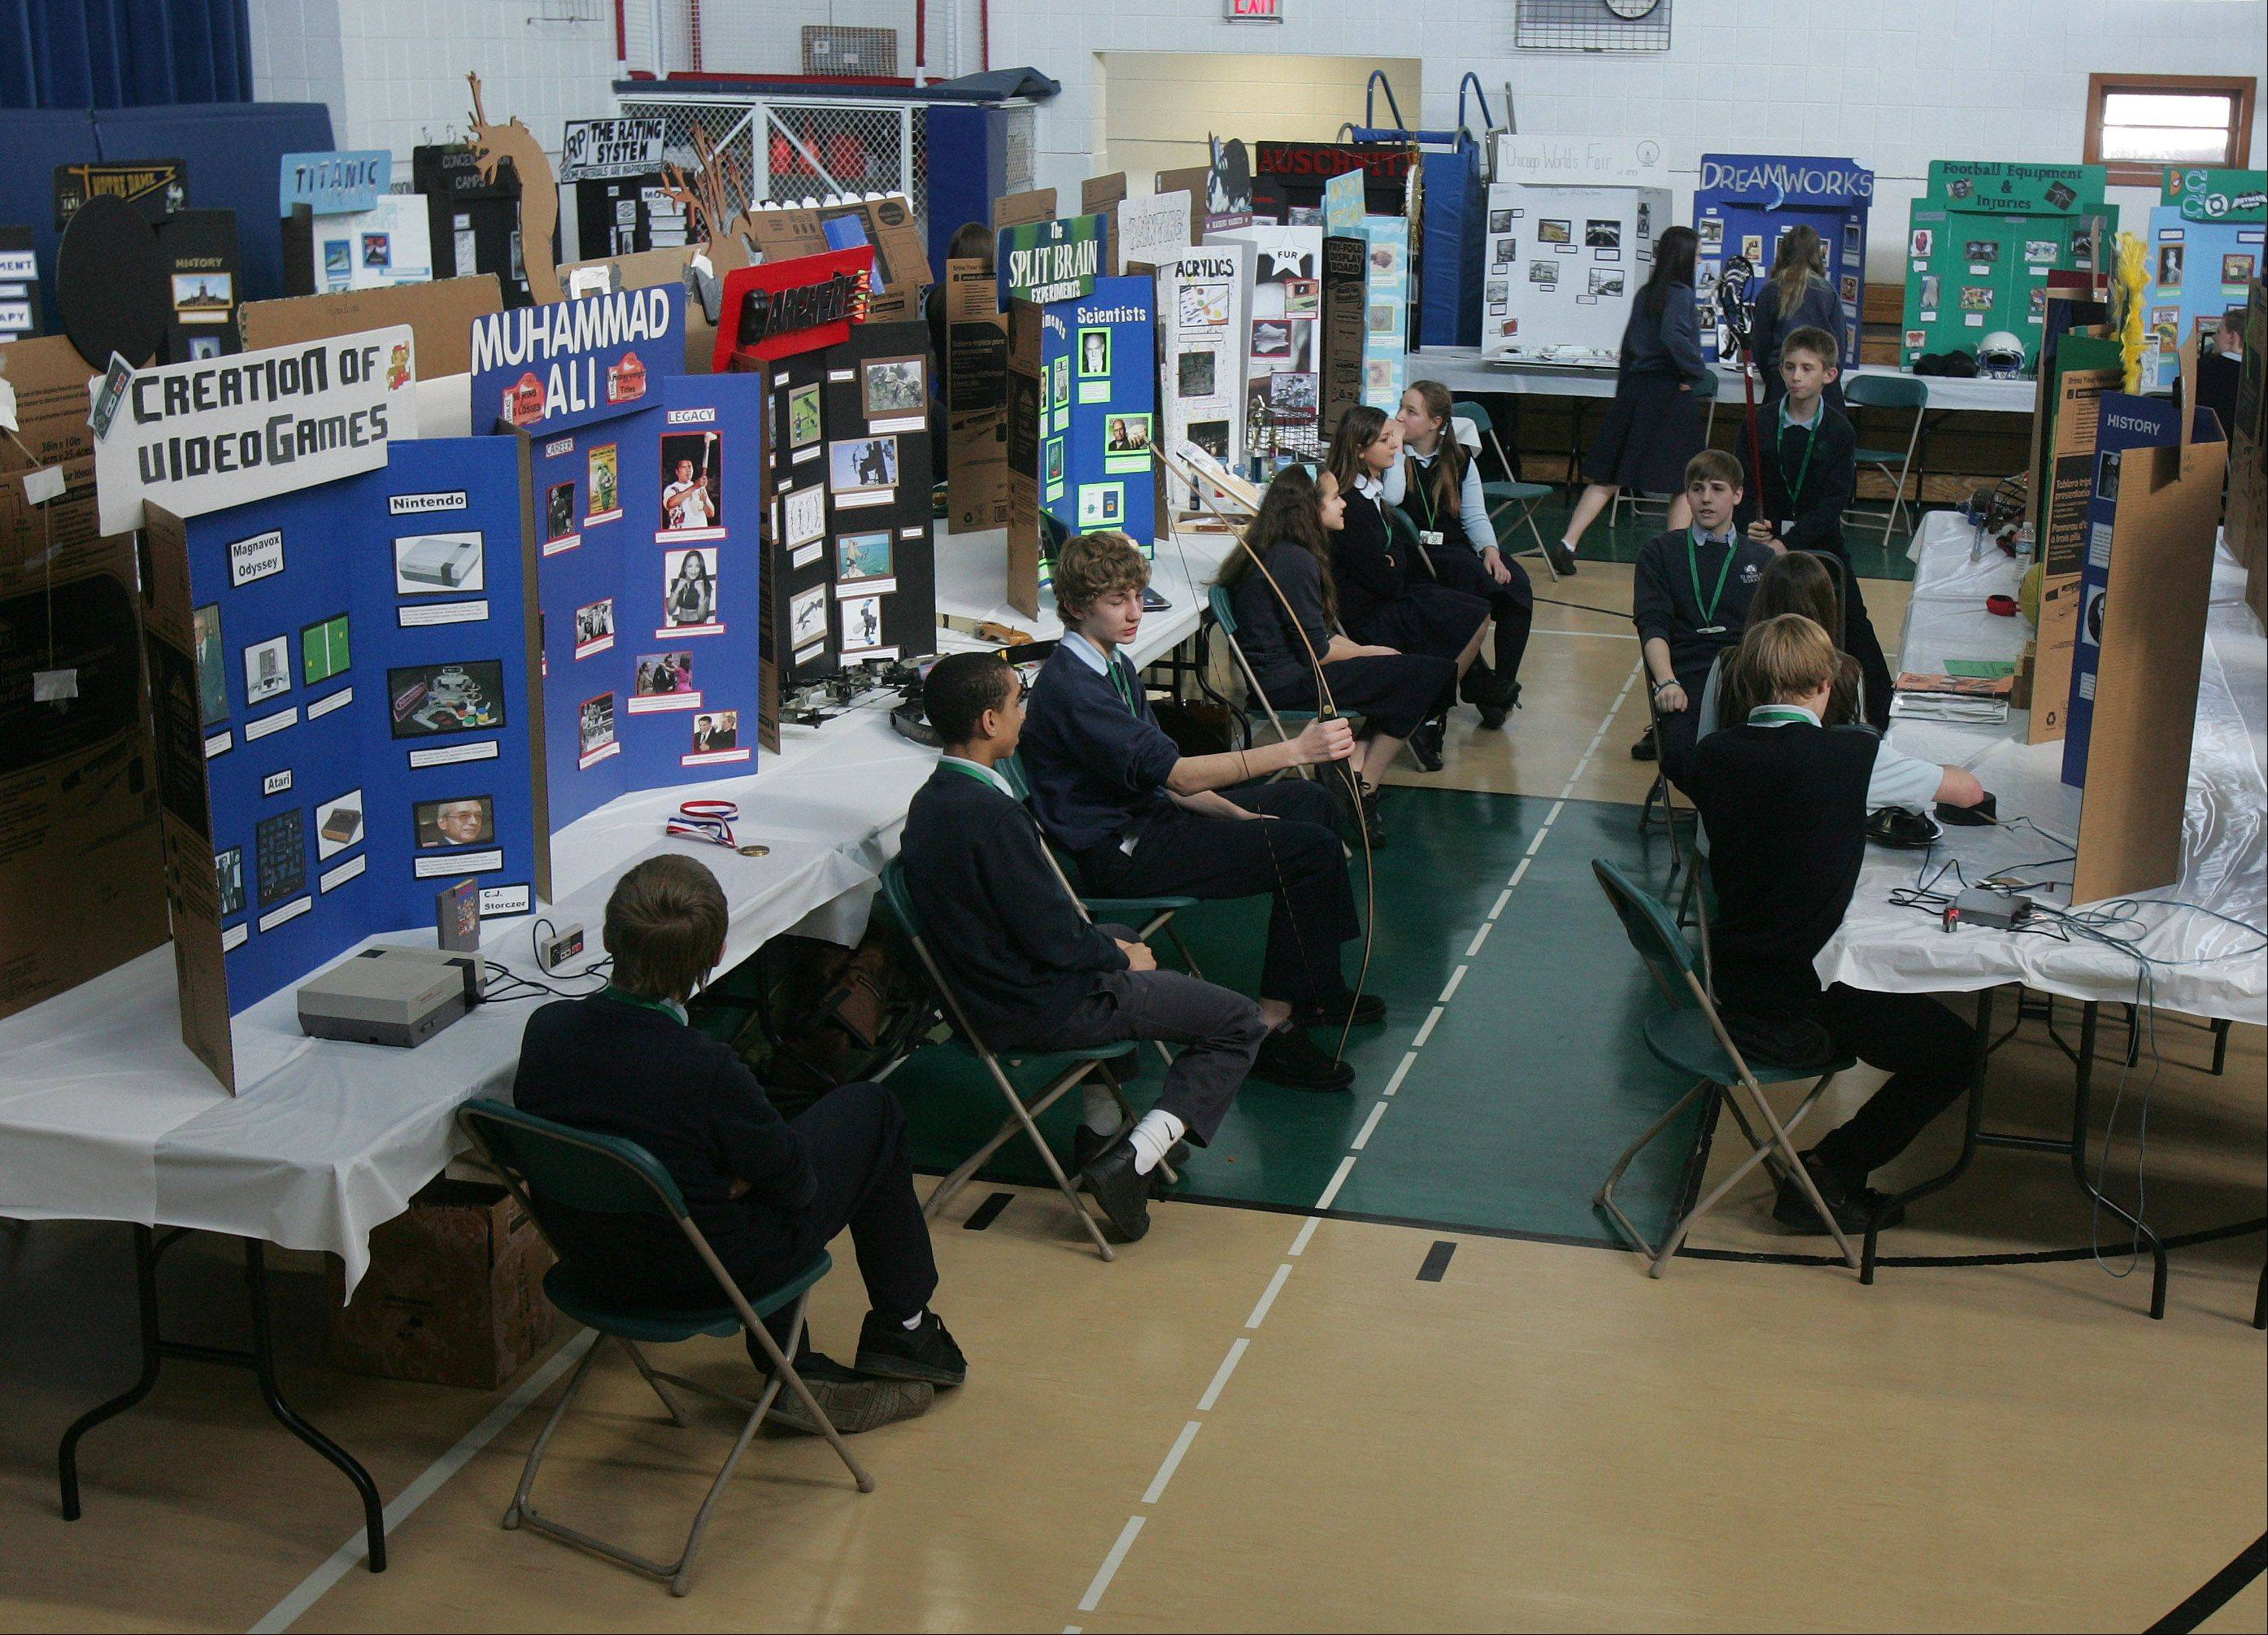 The Academic Fair at St. Patrick Catholic School in Wadsworth. Eighth-grade students present projects on topics ranging from robotics, to Walt Disney World, to the Salem witch hunts.